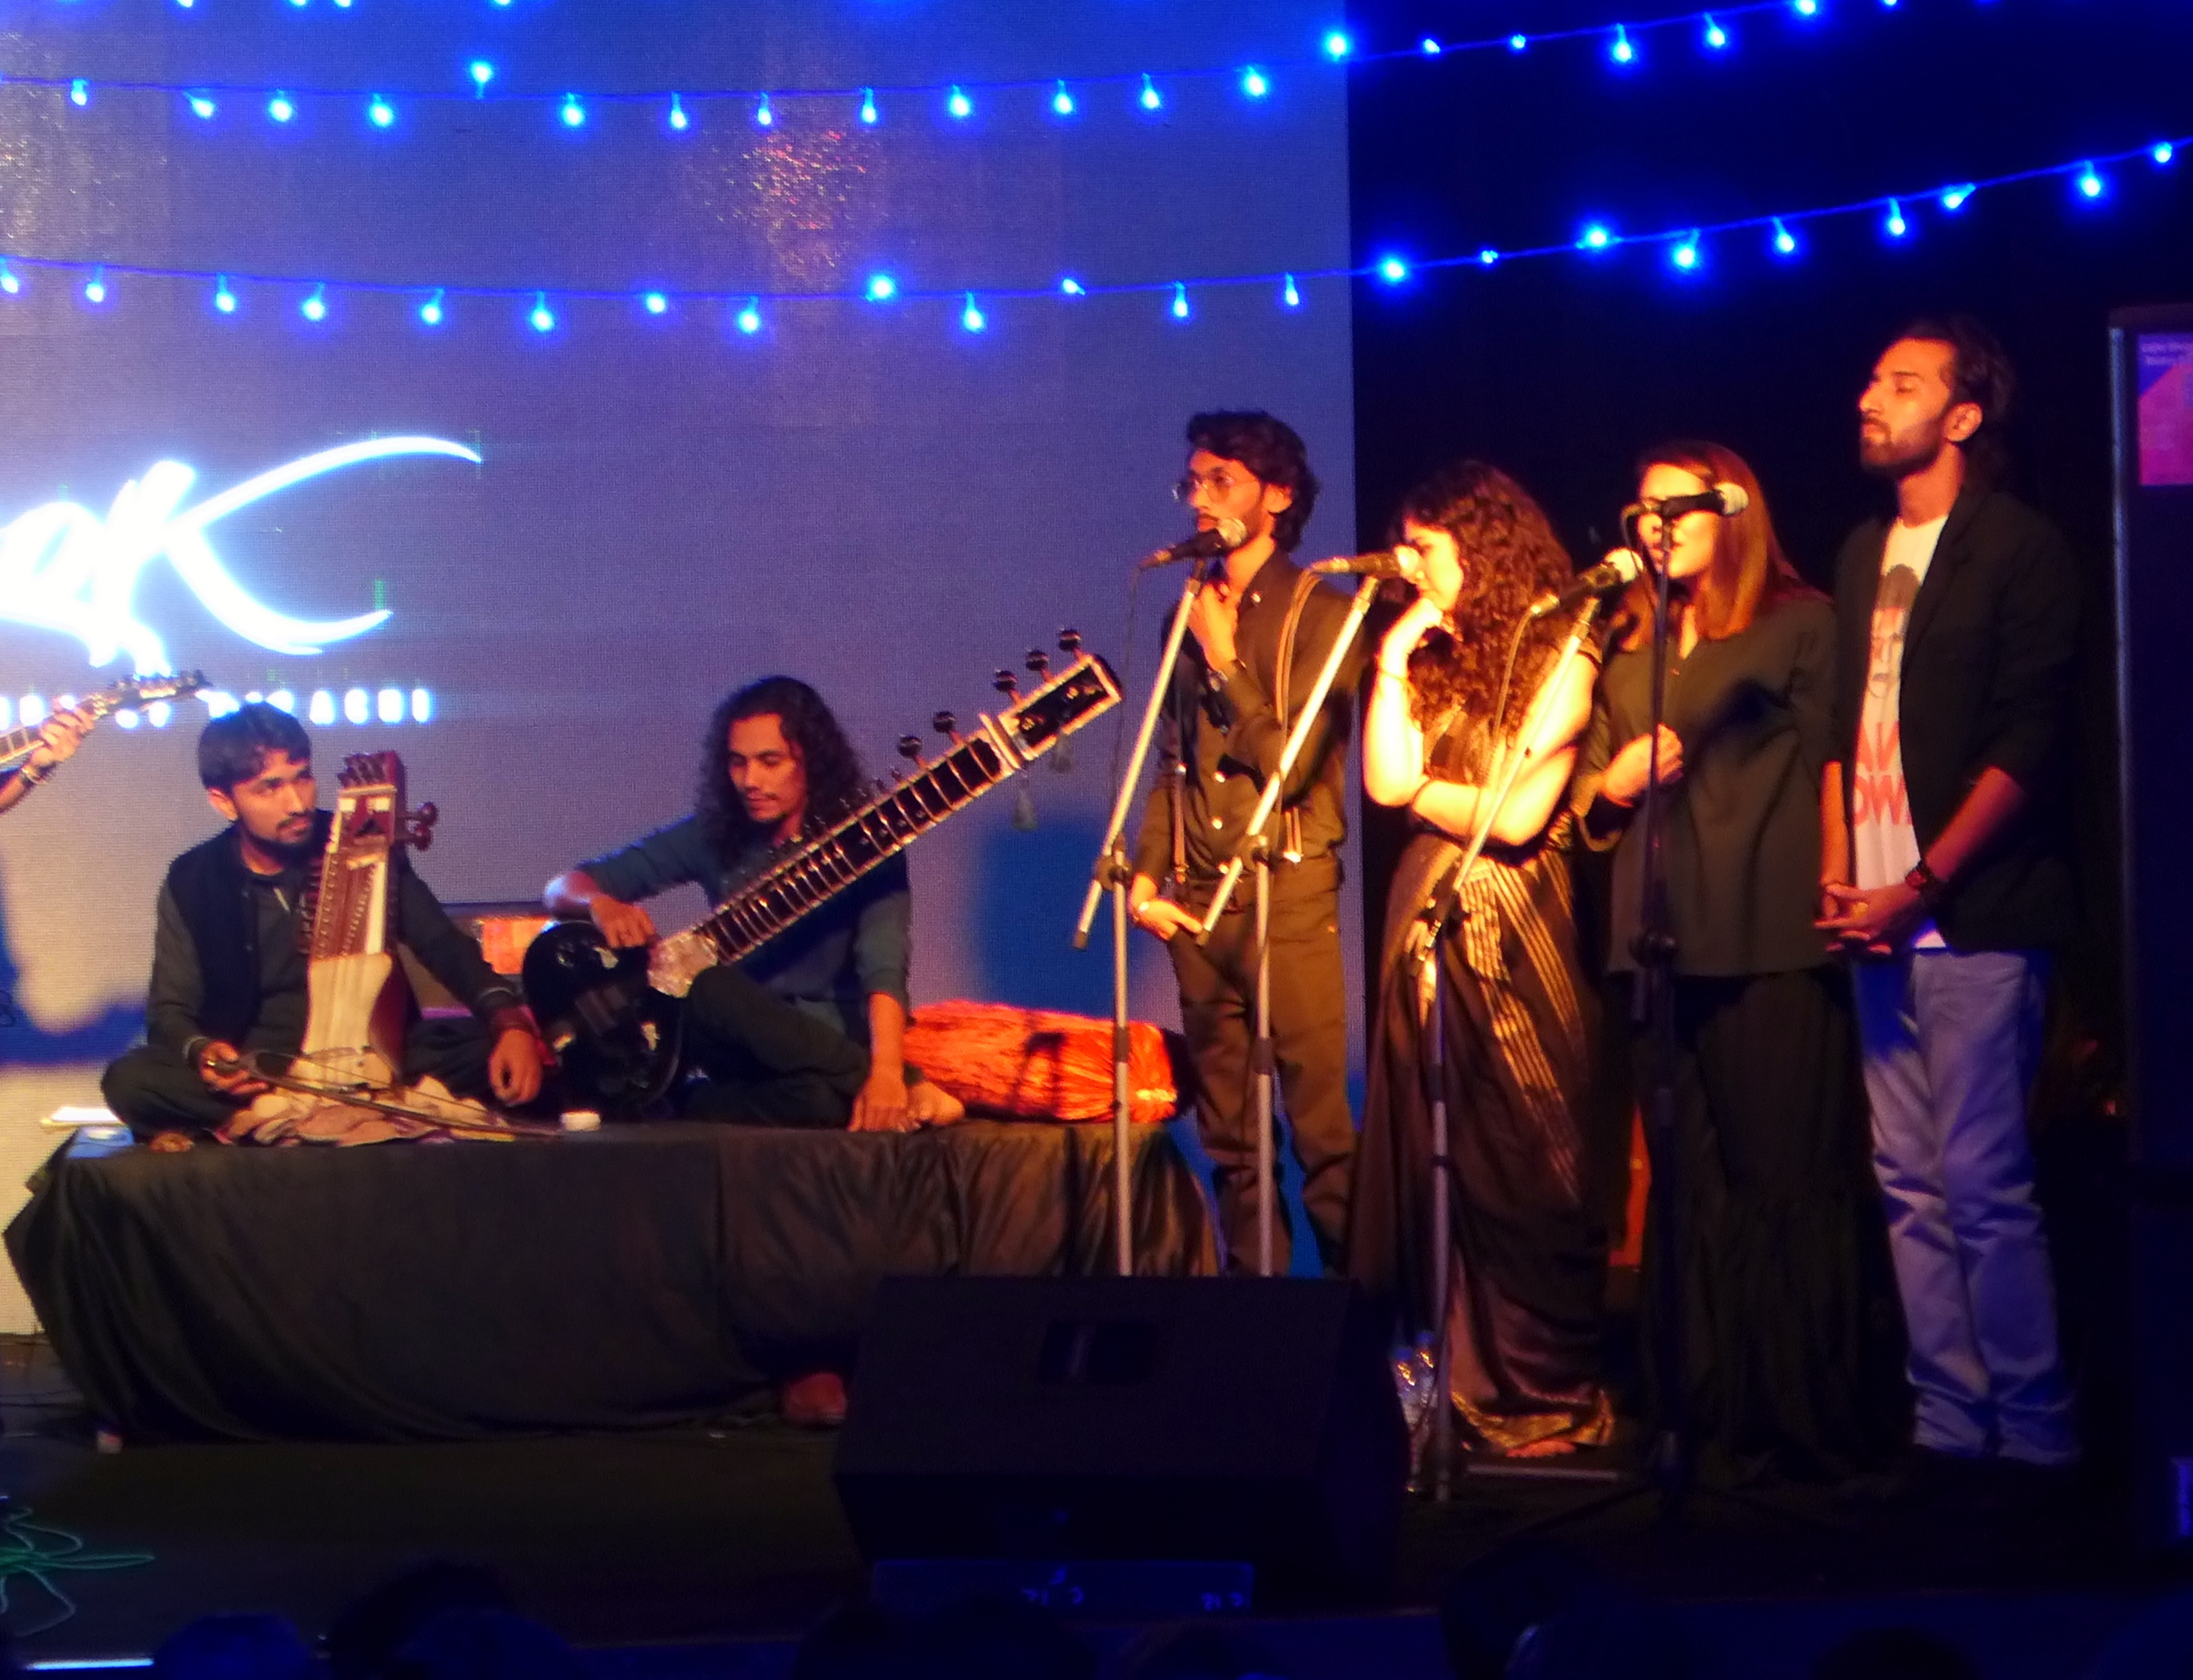 sounds of kolachi concert the night was laced with sufi beats